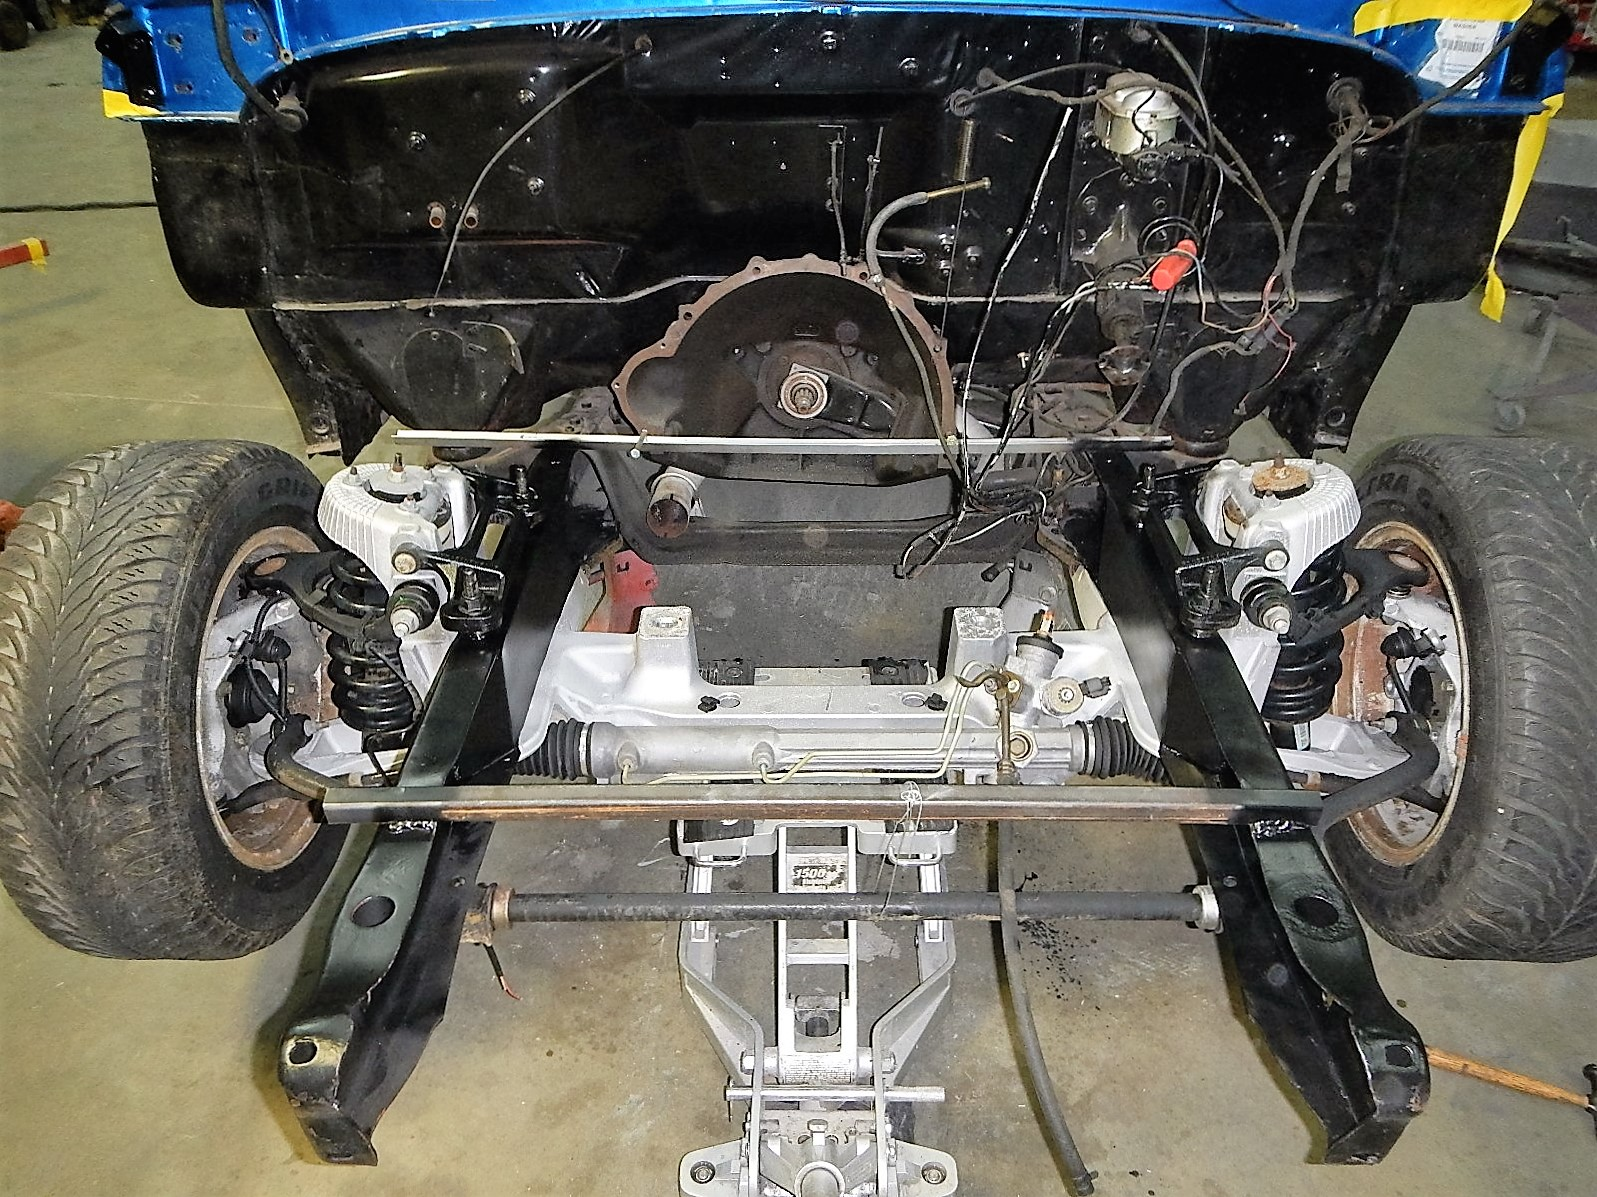 1968 Ford F-100 Front End Swap - Mercury Crown Vic  067.jpg